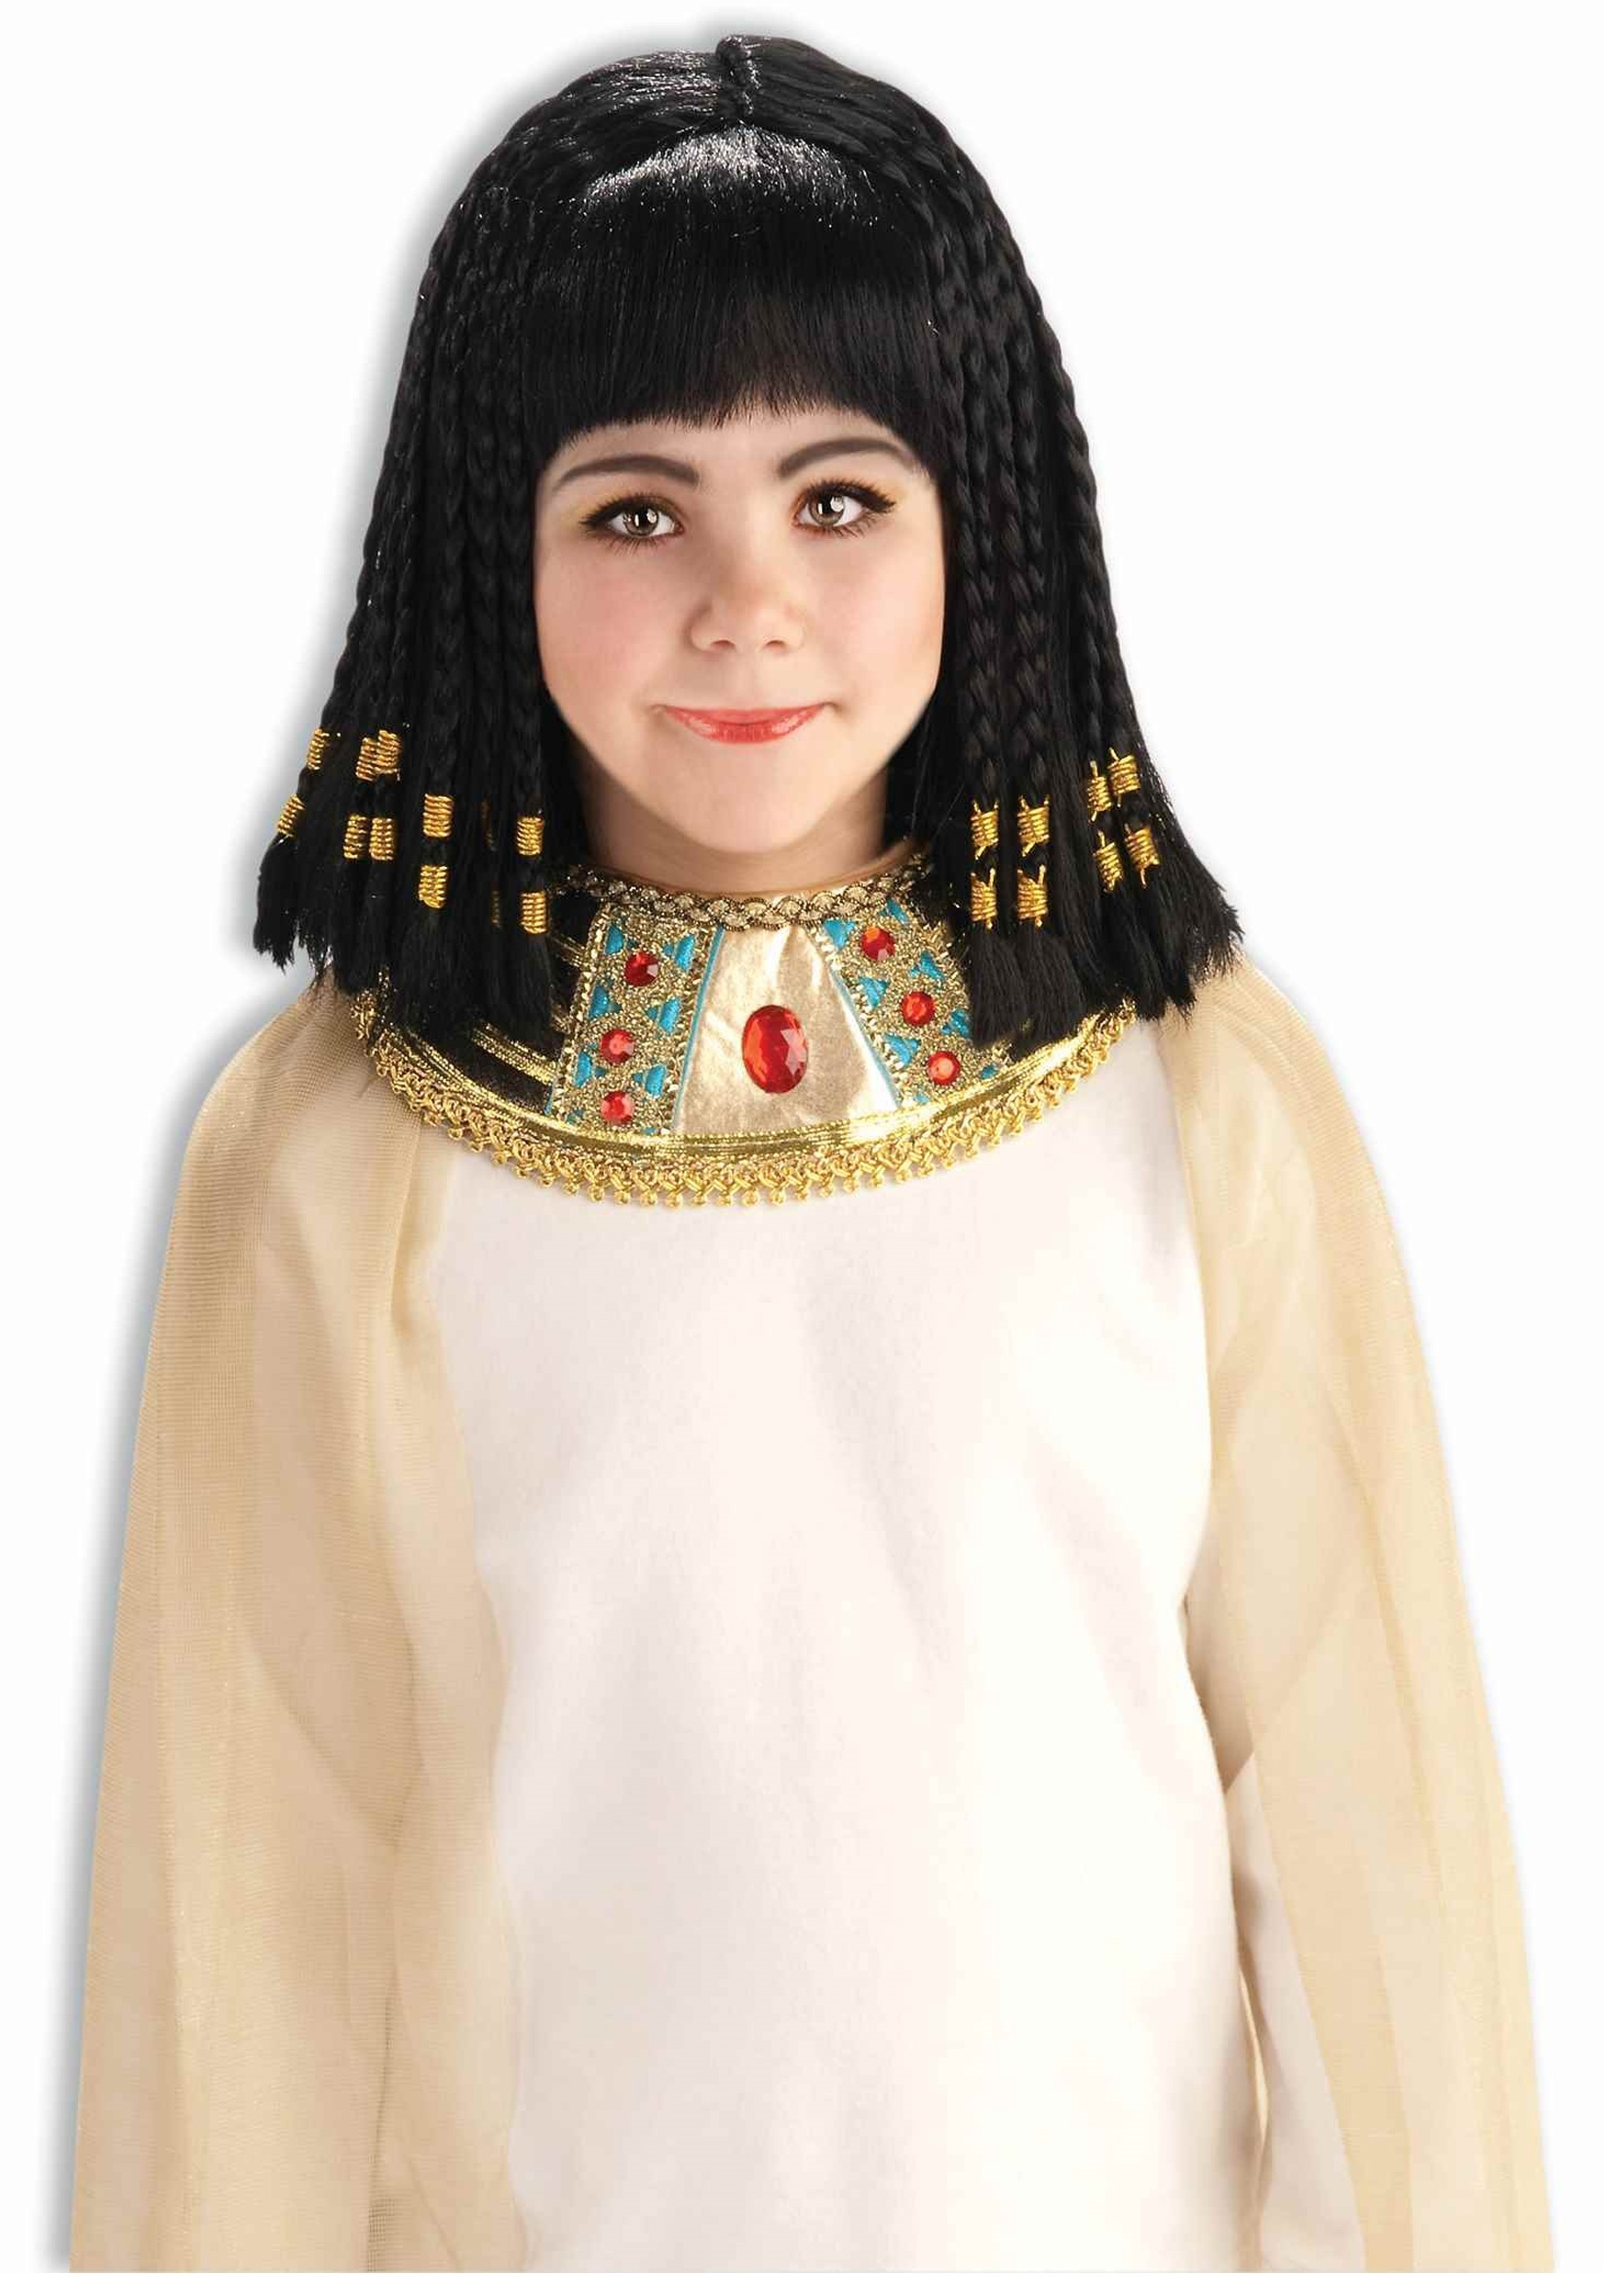 Child Queen Cleopatra Wig  sc 1 st  Halloween Costume & Child Queen Cleopatra Wig - Girls Egyptian Queen Costume Accessory